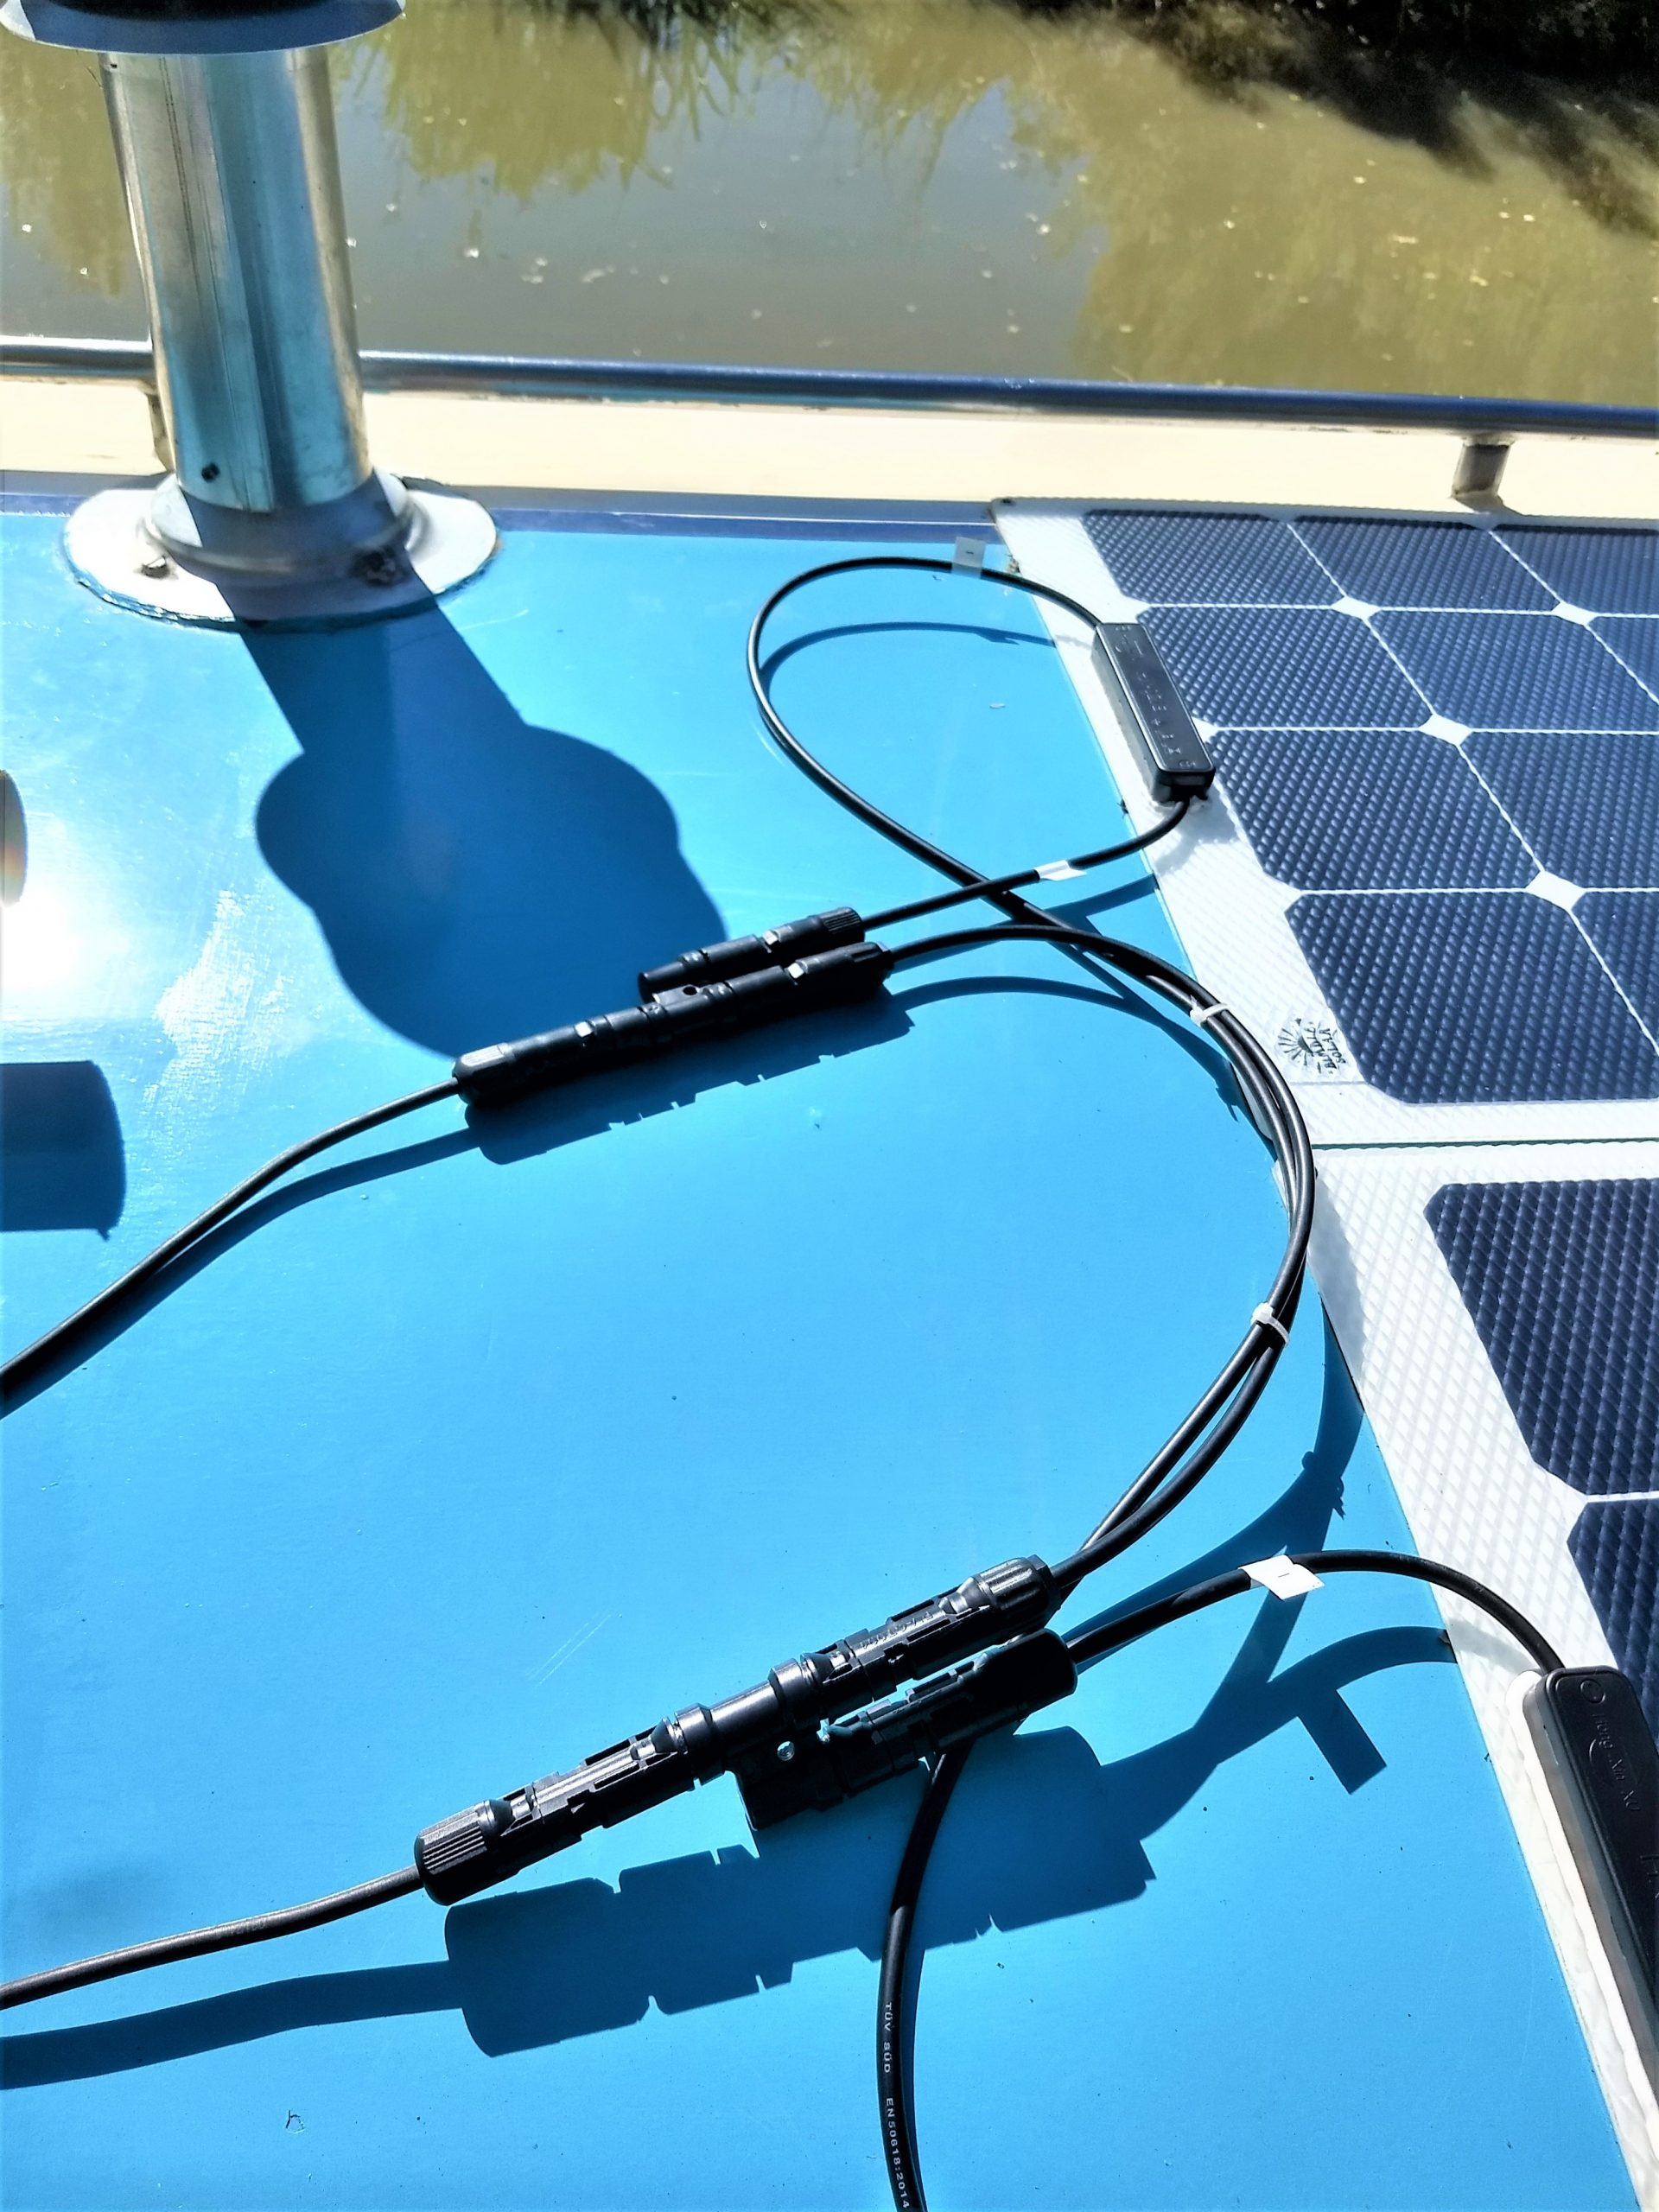 Fitting Flexible Solar Panels To A Narrowboat Continuous Cruising Power Kit Wiring And Connections Connecting In Parallel